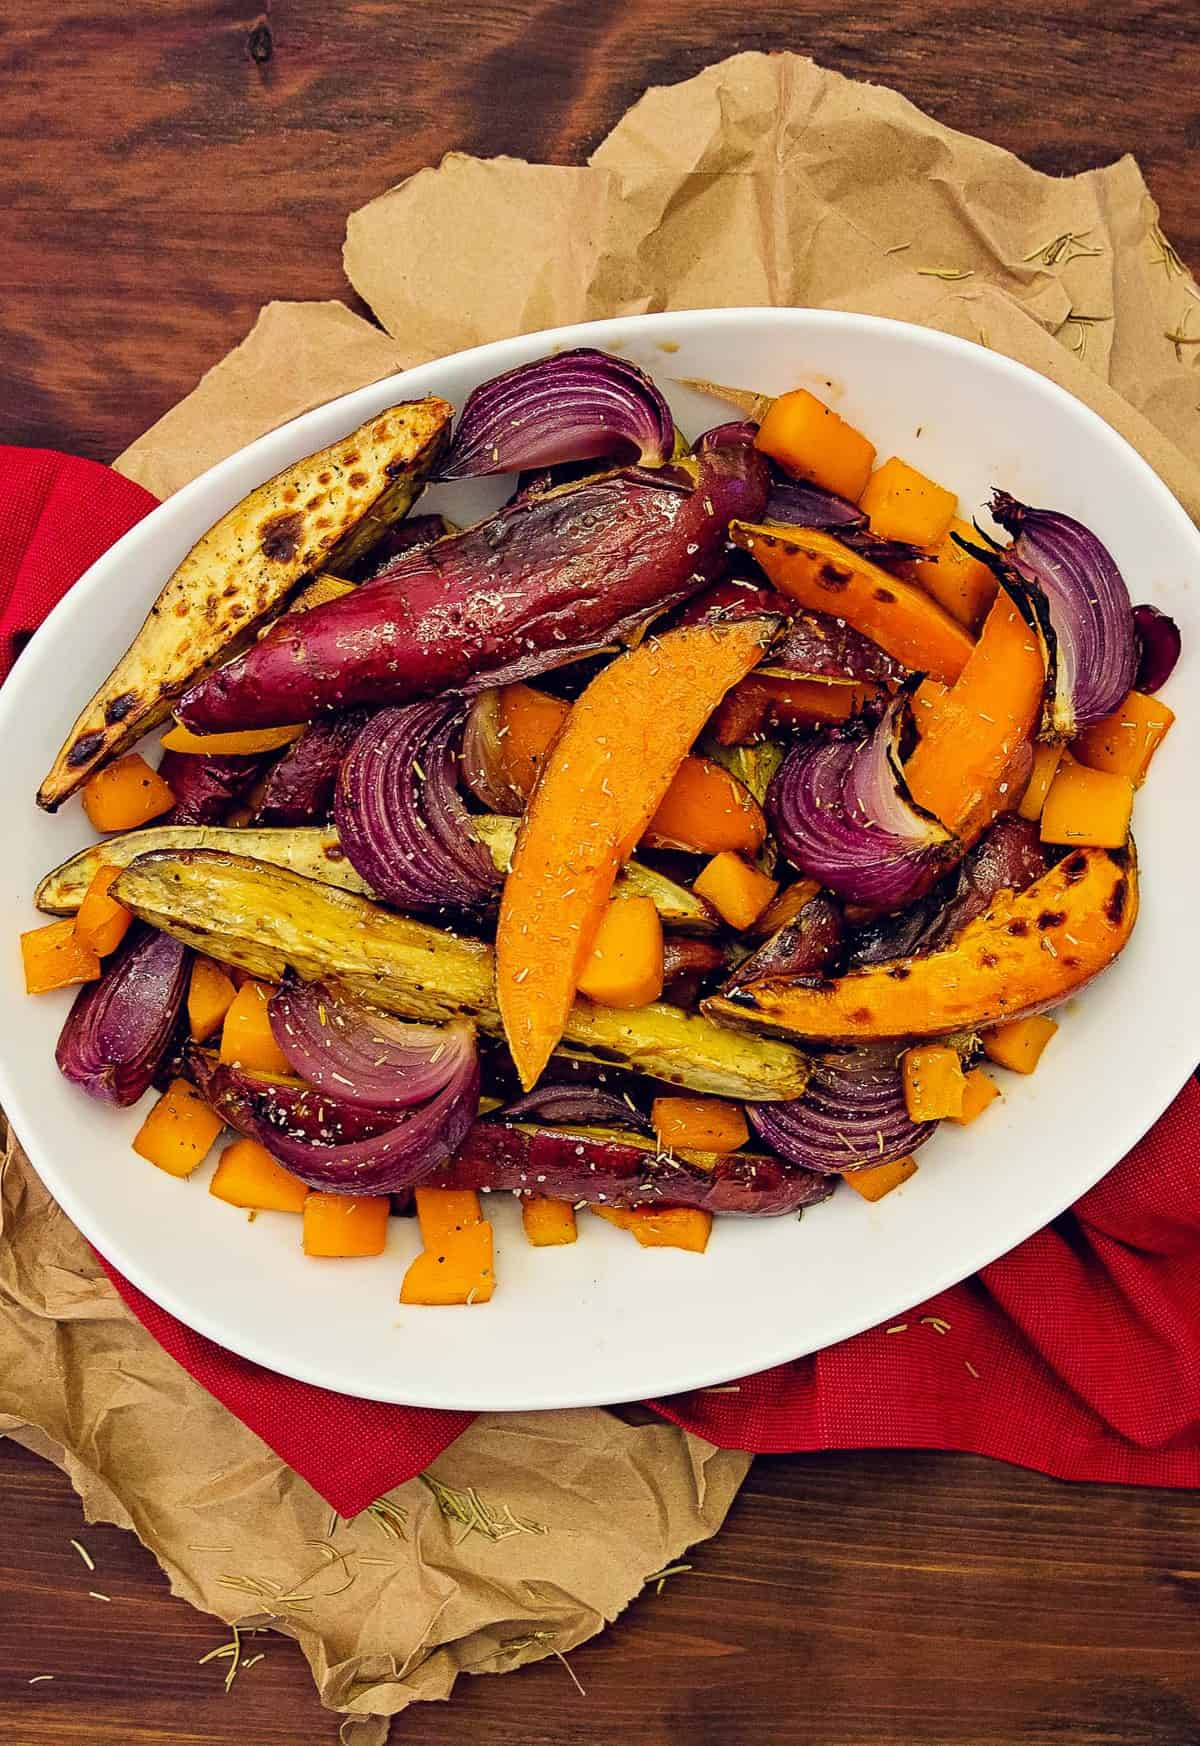 oven roasted rosemary root vegetables, oven roasted, root vegetables, veggies, rosemary, rosemary vegetables, whole food plant based, plant based, vegan, vegetarian, vegan side dish, vegetarian side dish, side, sides, side dish, oil free, no oil, refined sugar free, sweet potatoes, potatoes, Japanese sweet potatoes, butternut squash, squash, gluten free, quick, easy, fast